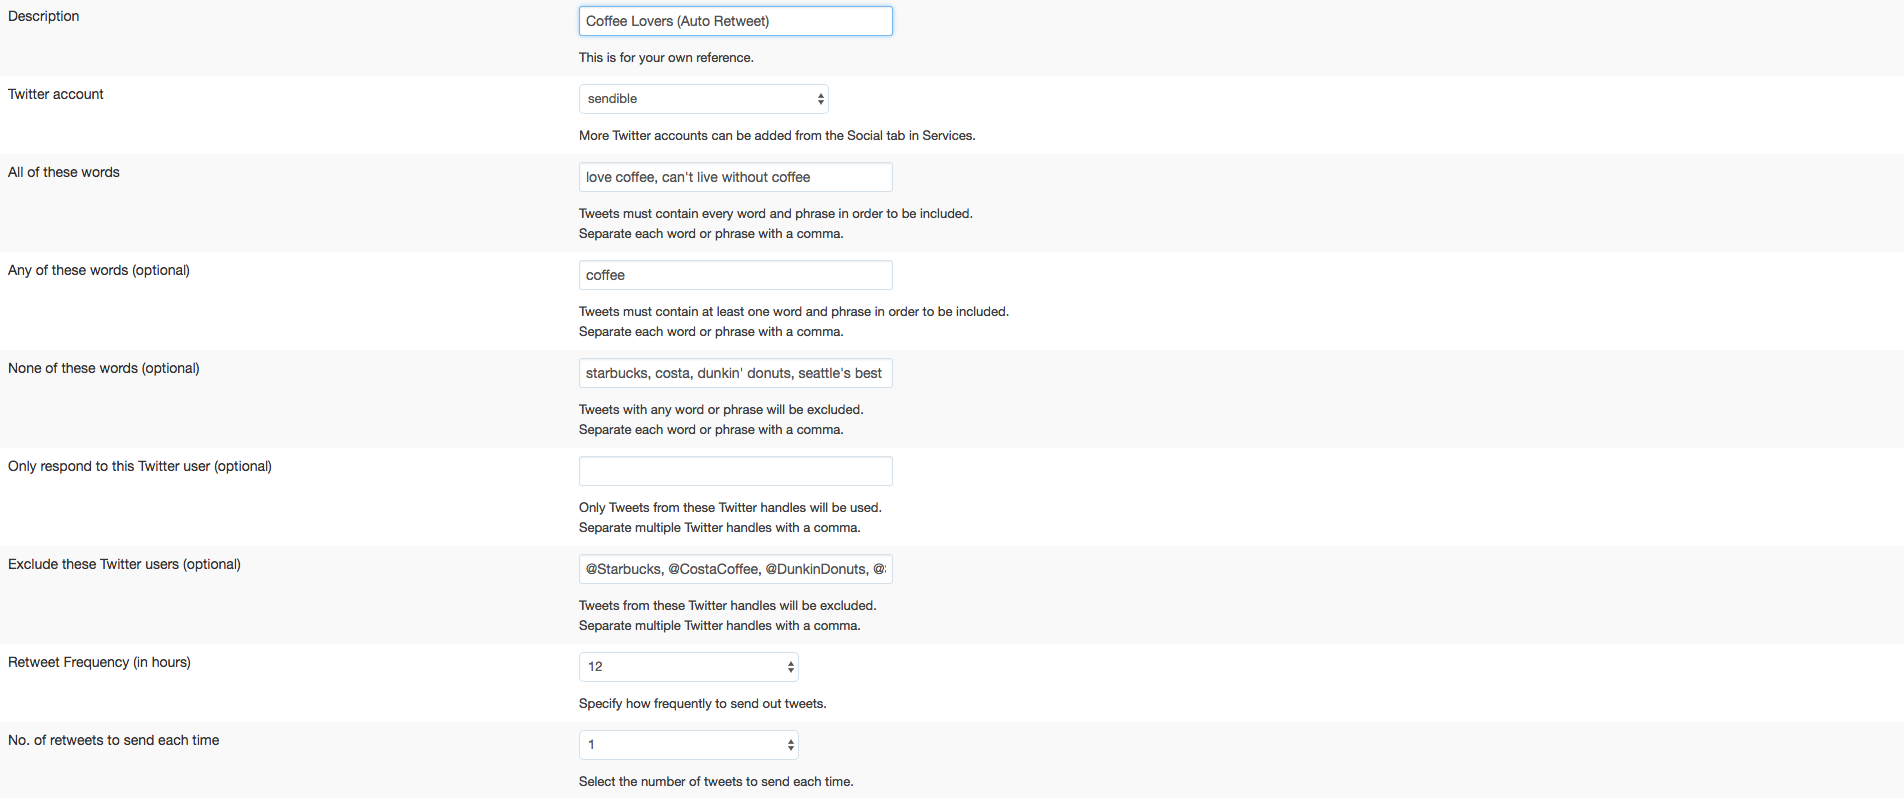 Setting up an automatic retweet service for terms related to coffee